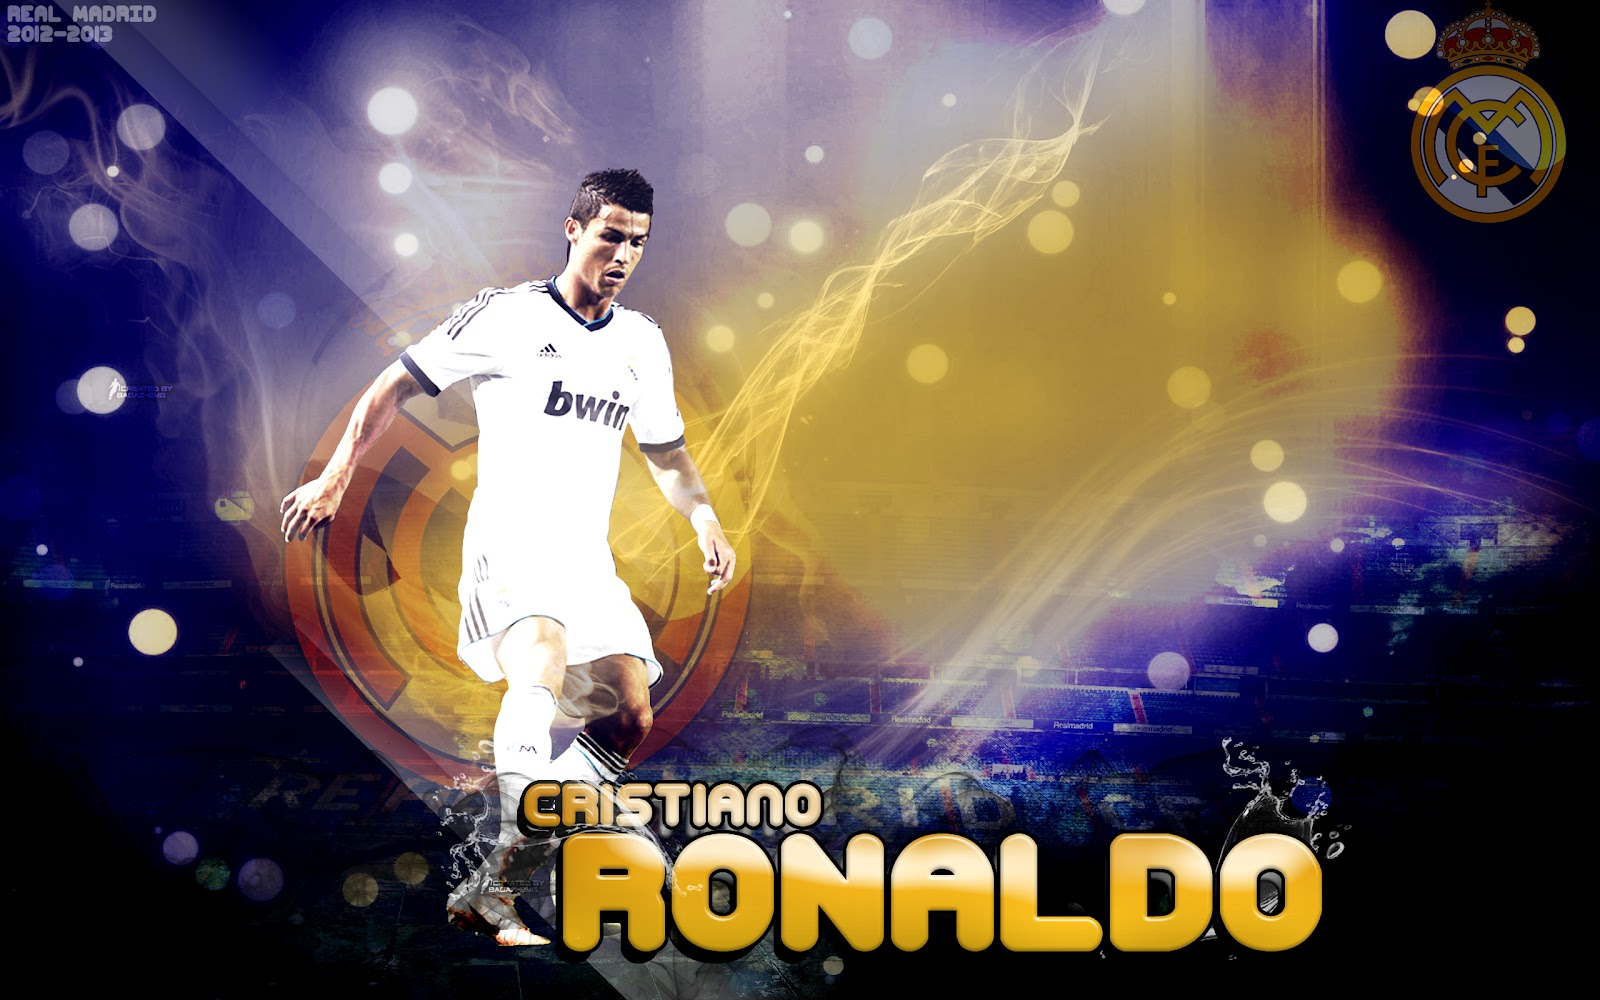 Cristiano Ronaldo Real Madrid Fresh HD Wallpapers 12-2013 ~ All About HD Wallpapers